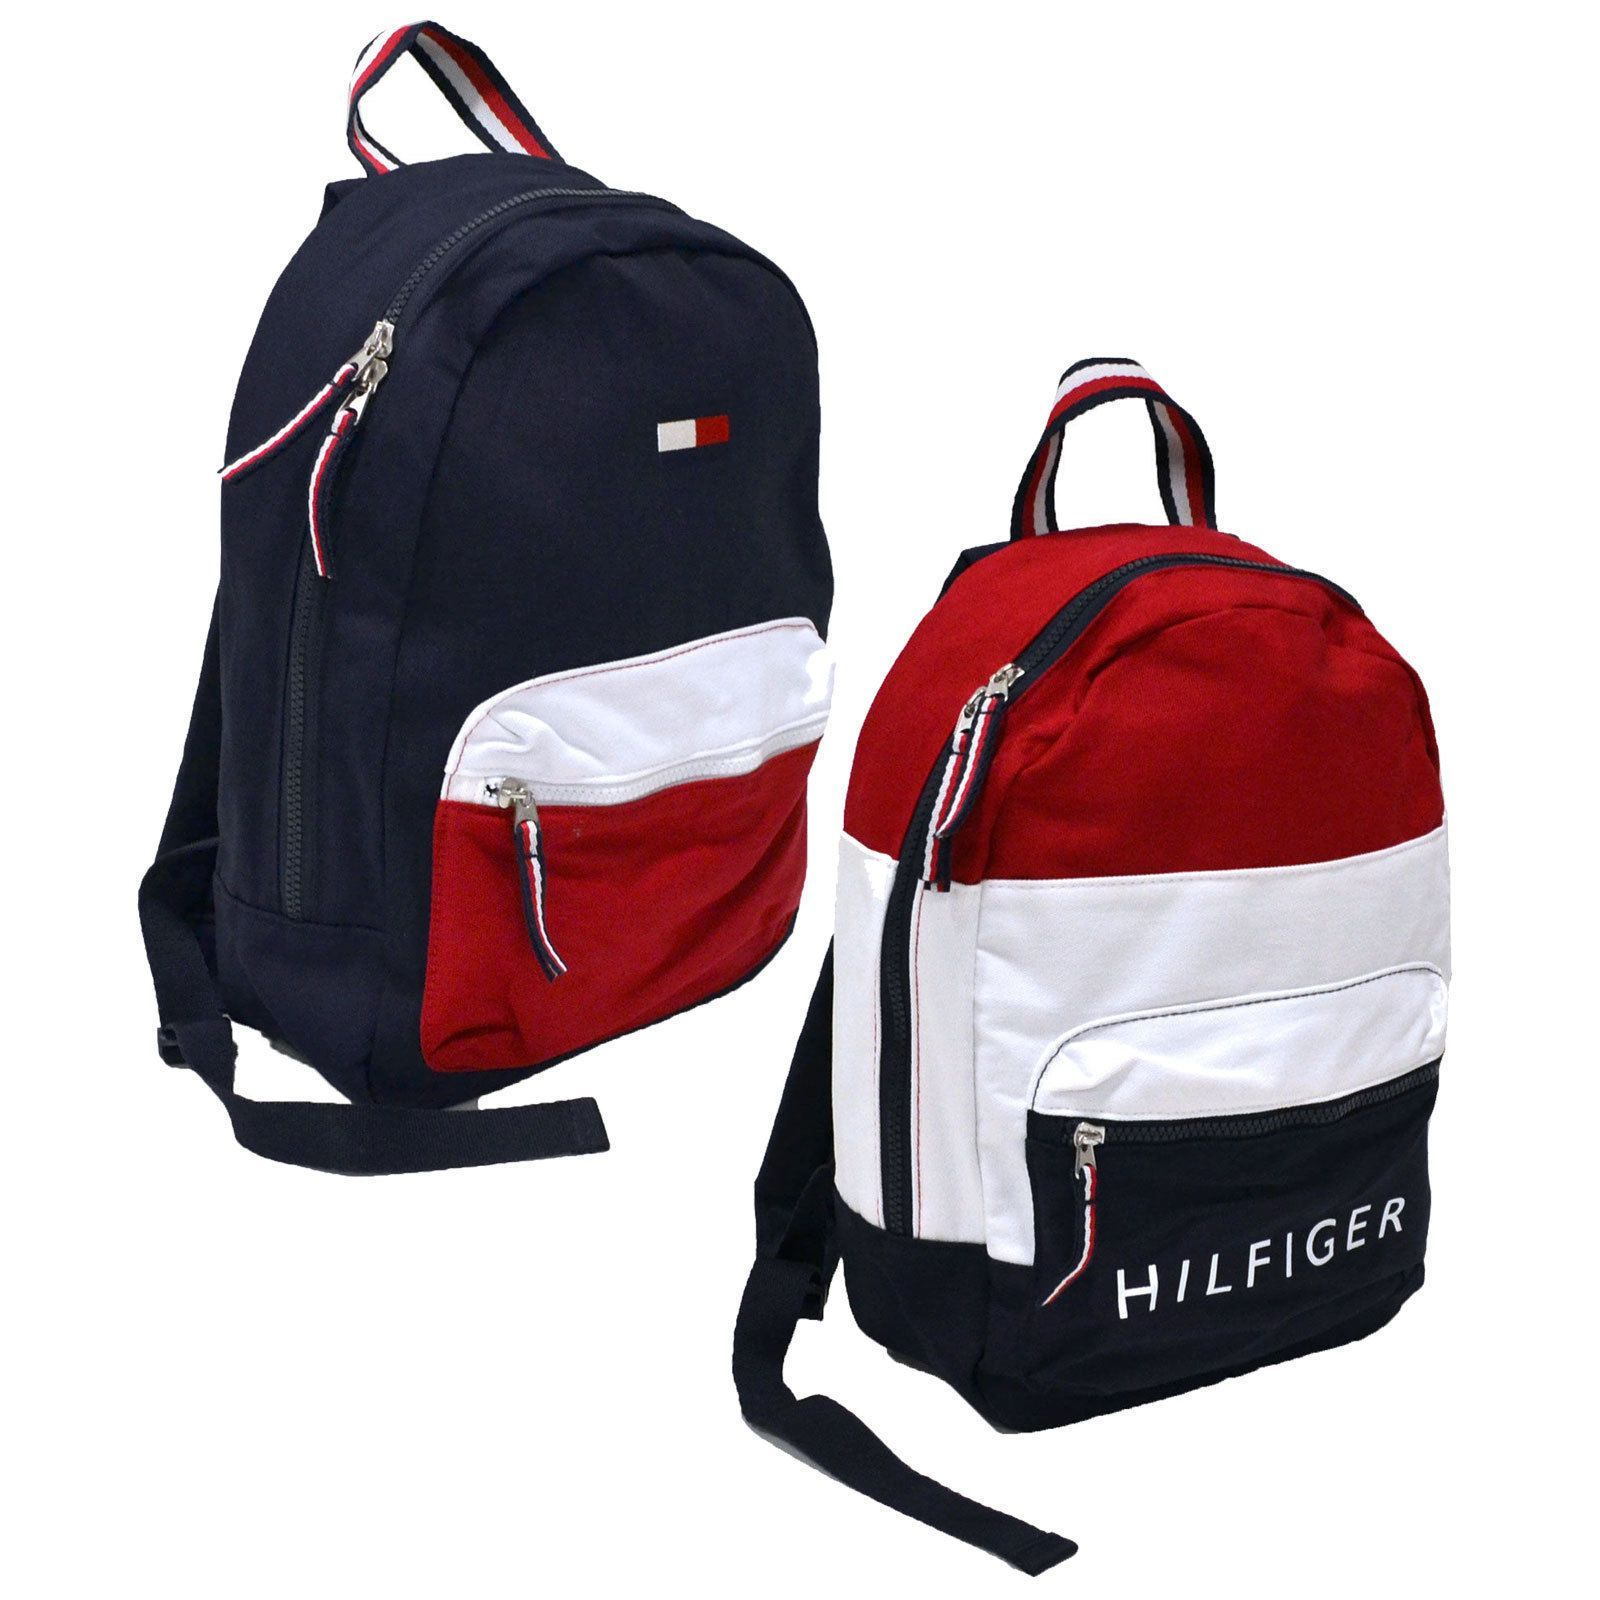 Sac A Dos Sac A Dos Dos Sac In 2020 Tommy Hilfiger Bags Bags Tommy Hilfiger Outfit